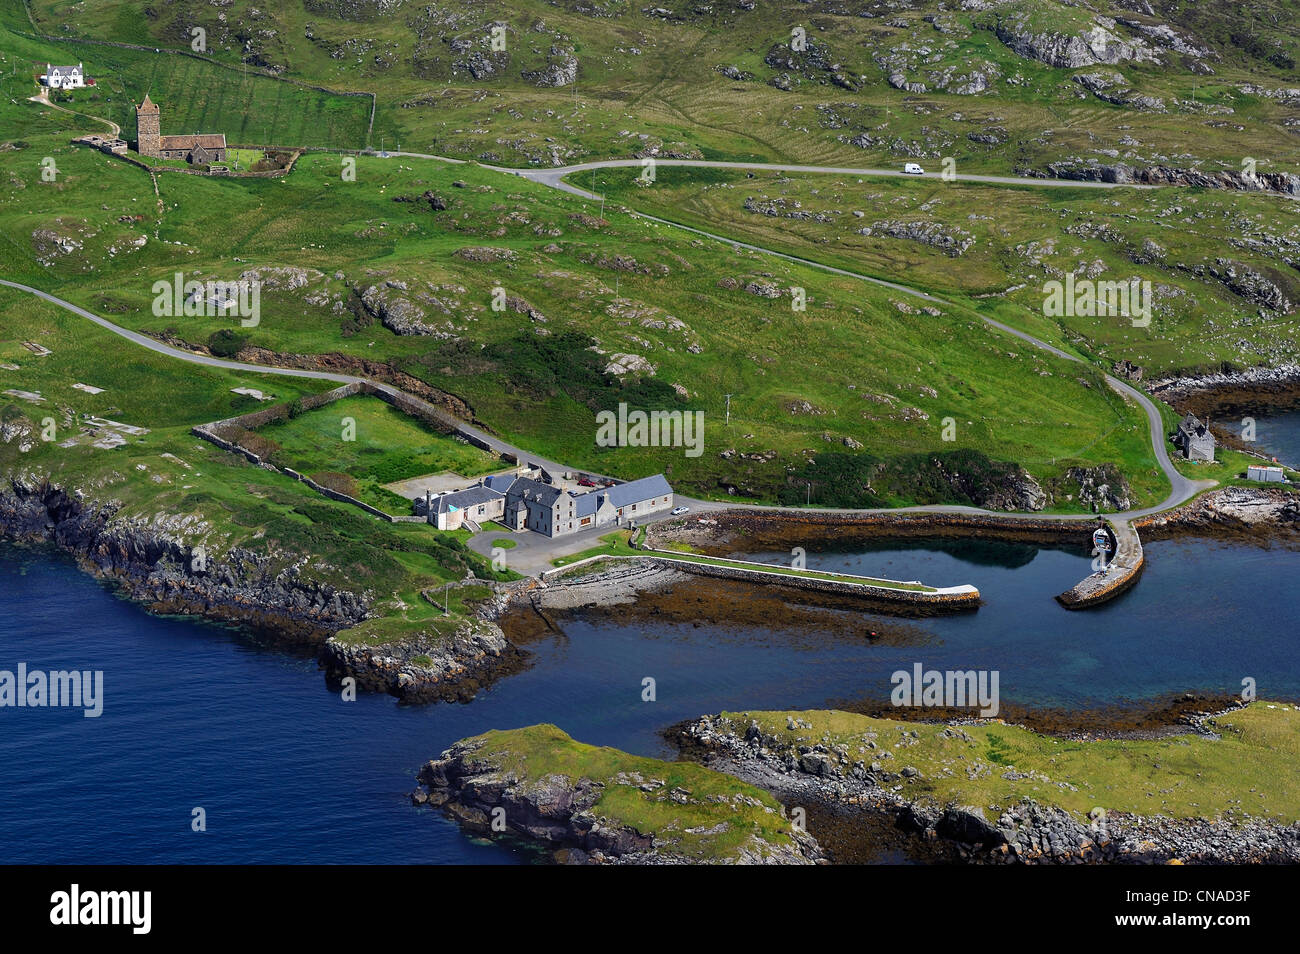 United Kingdom, Scotland, Outer Hebrides, Lewis and Harris Island, South Harris, Rodel, medieval church and small - Stock Image